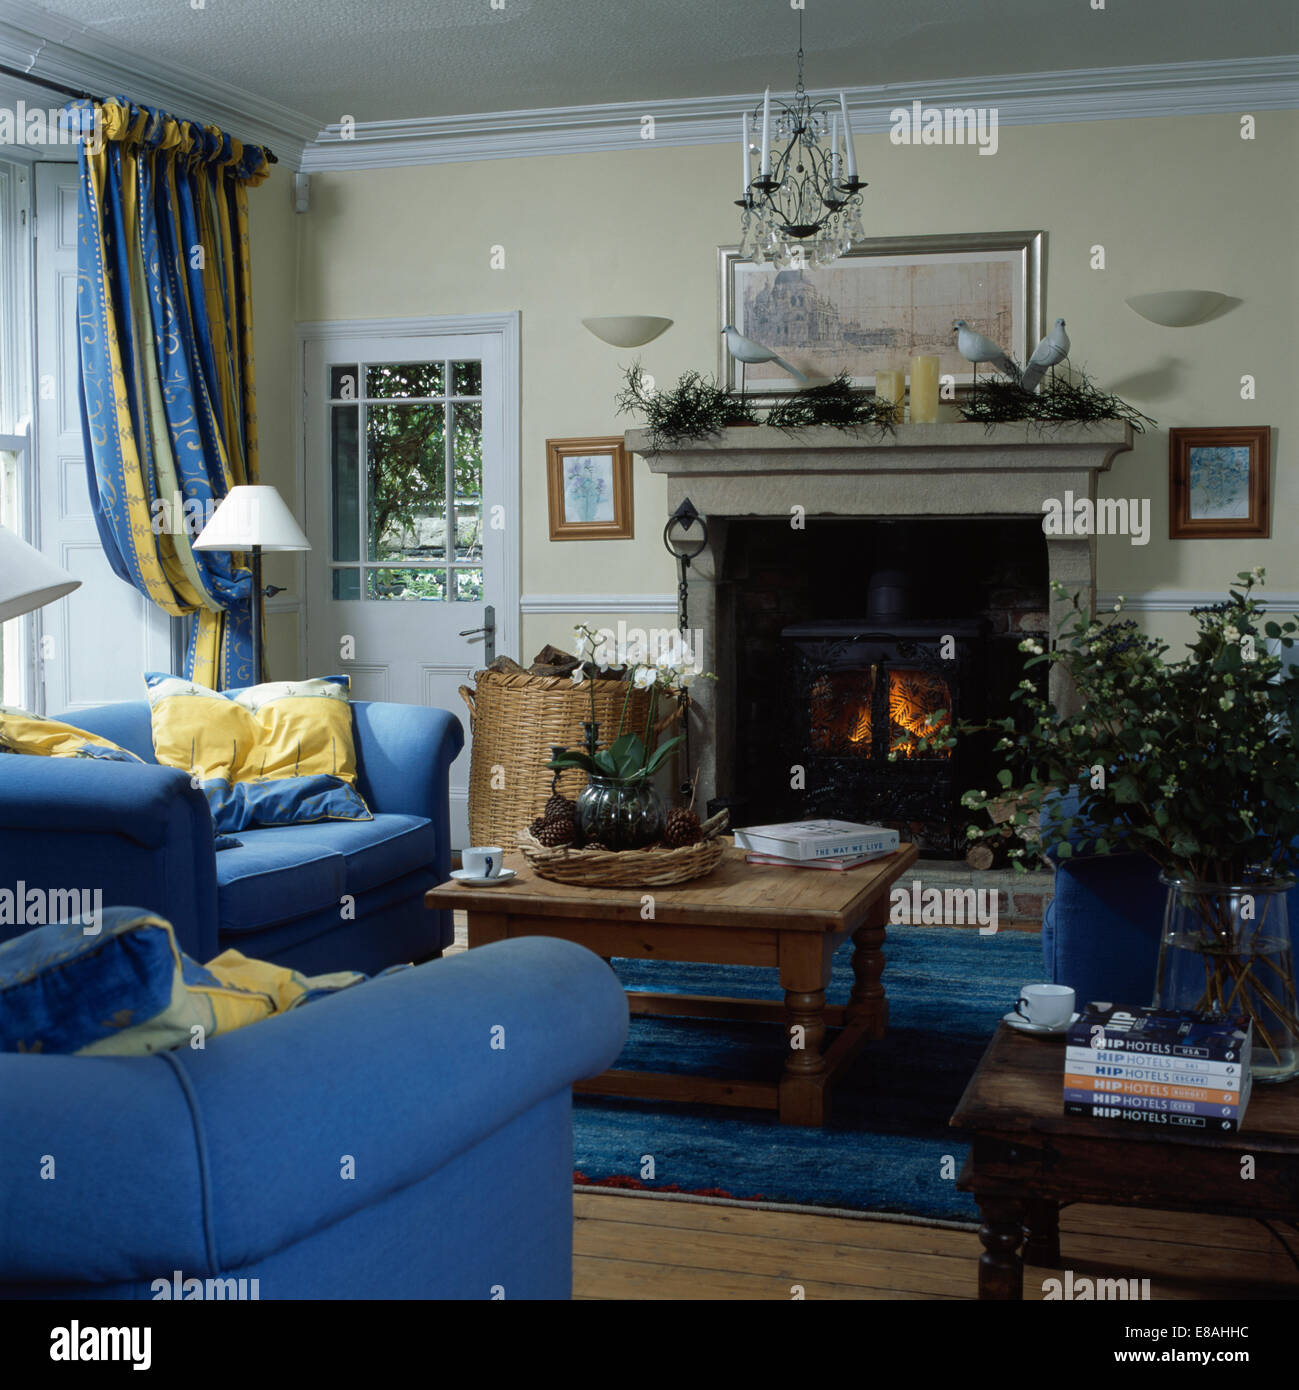 Blue sofas in country living room with wood-burning stove in stone ...